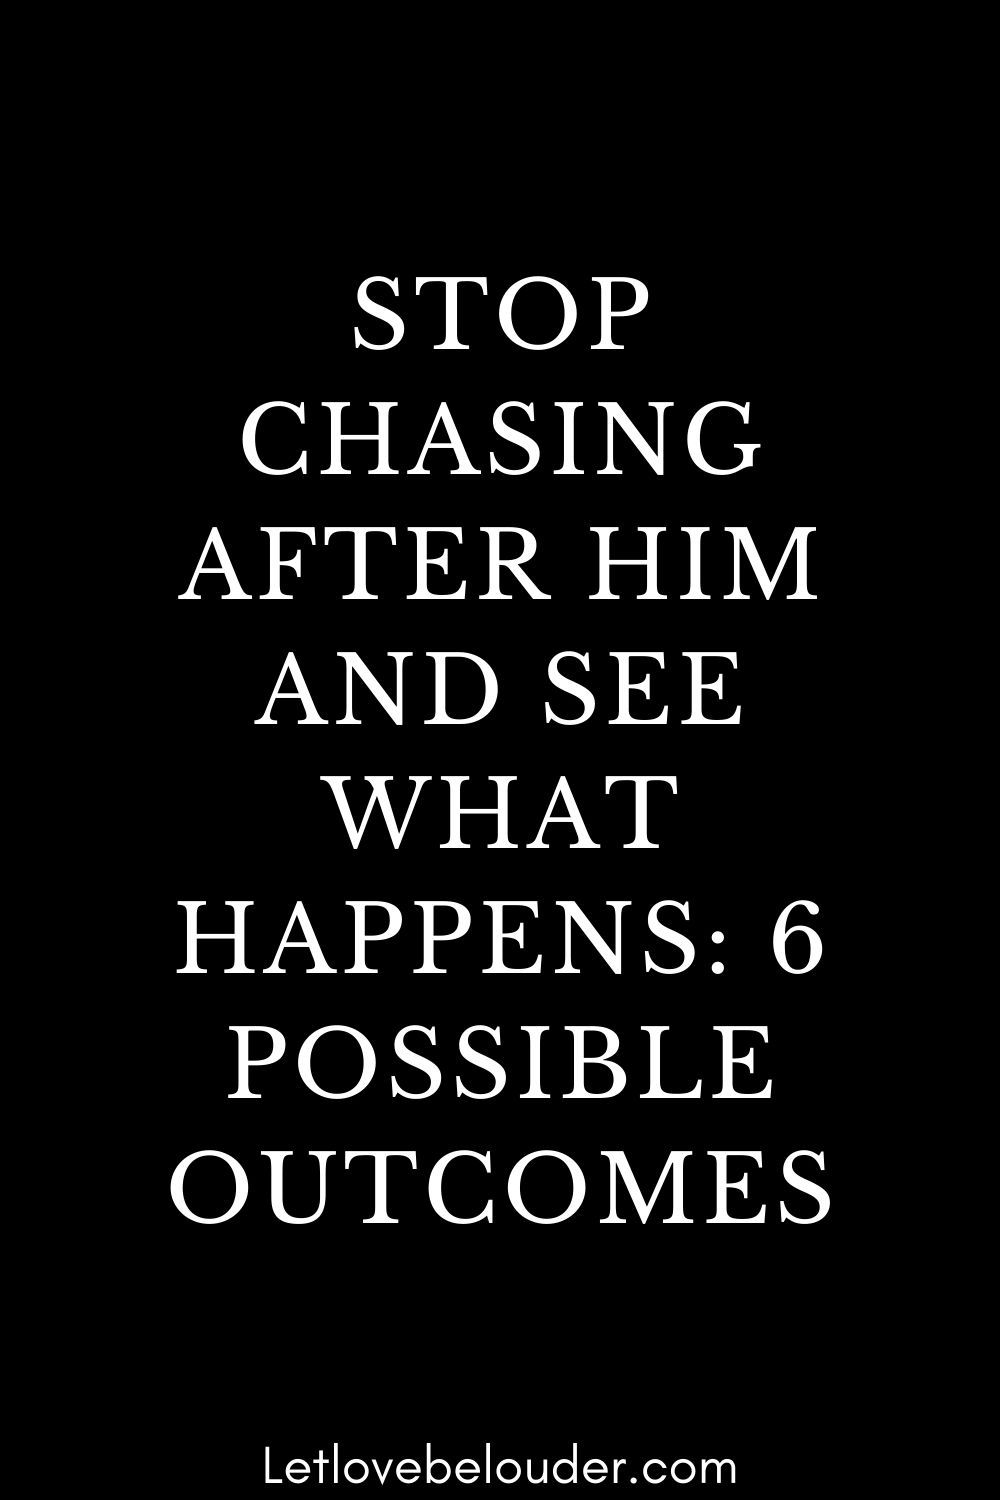 STOP CHASING AFTER HIM AND SEE WHAT HAPPENS: 6 POSSIBLE OUTCOMES